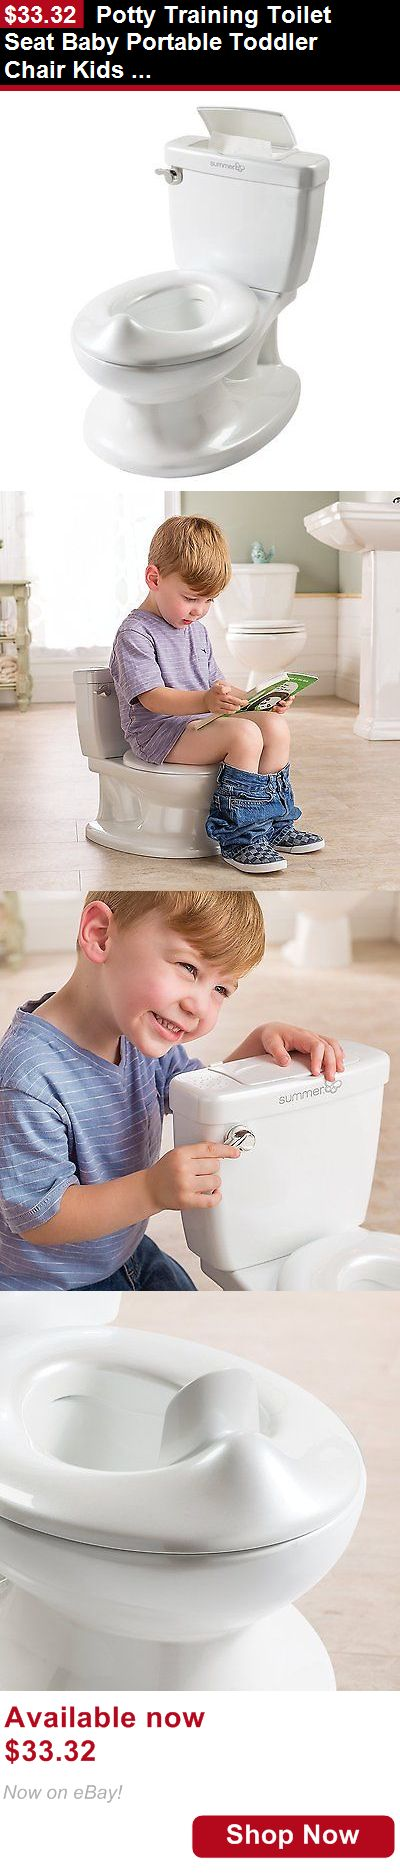 Potty Training: Potty Training Toilet Seat Baby Portable Toddler Chair Kids Girl Boy Trainer BUY IT NOW ONLY: $33.32